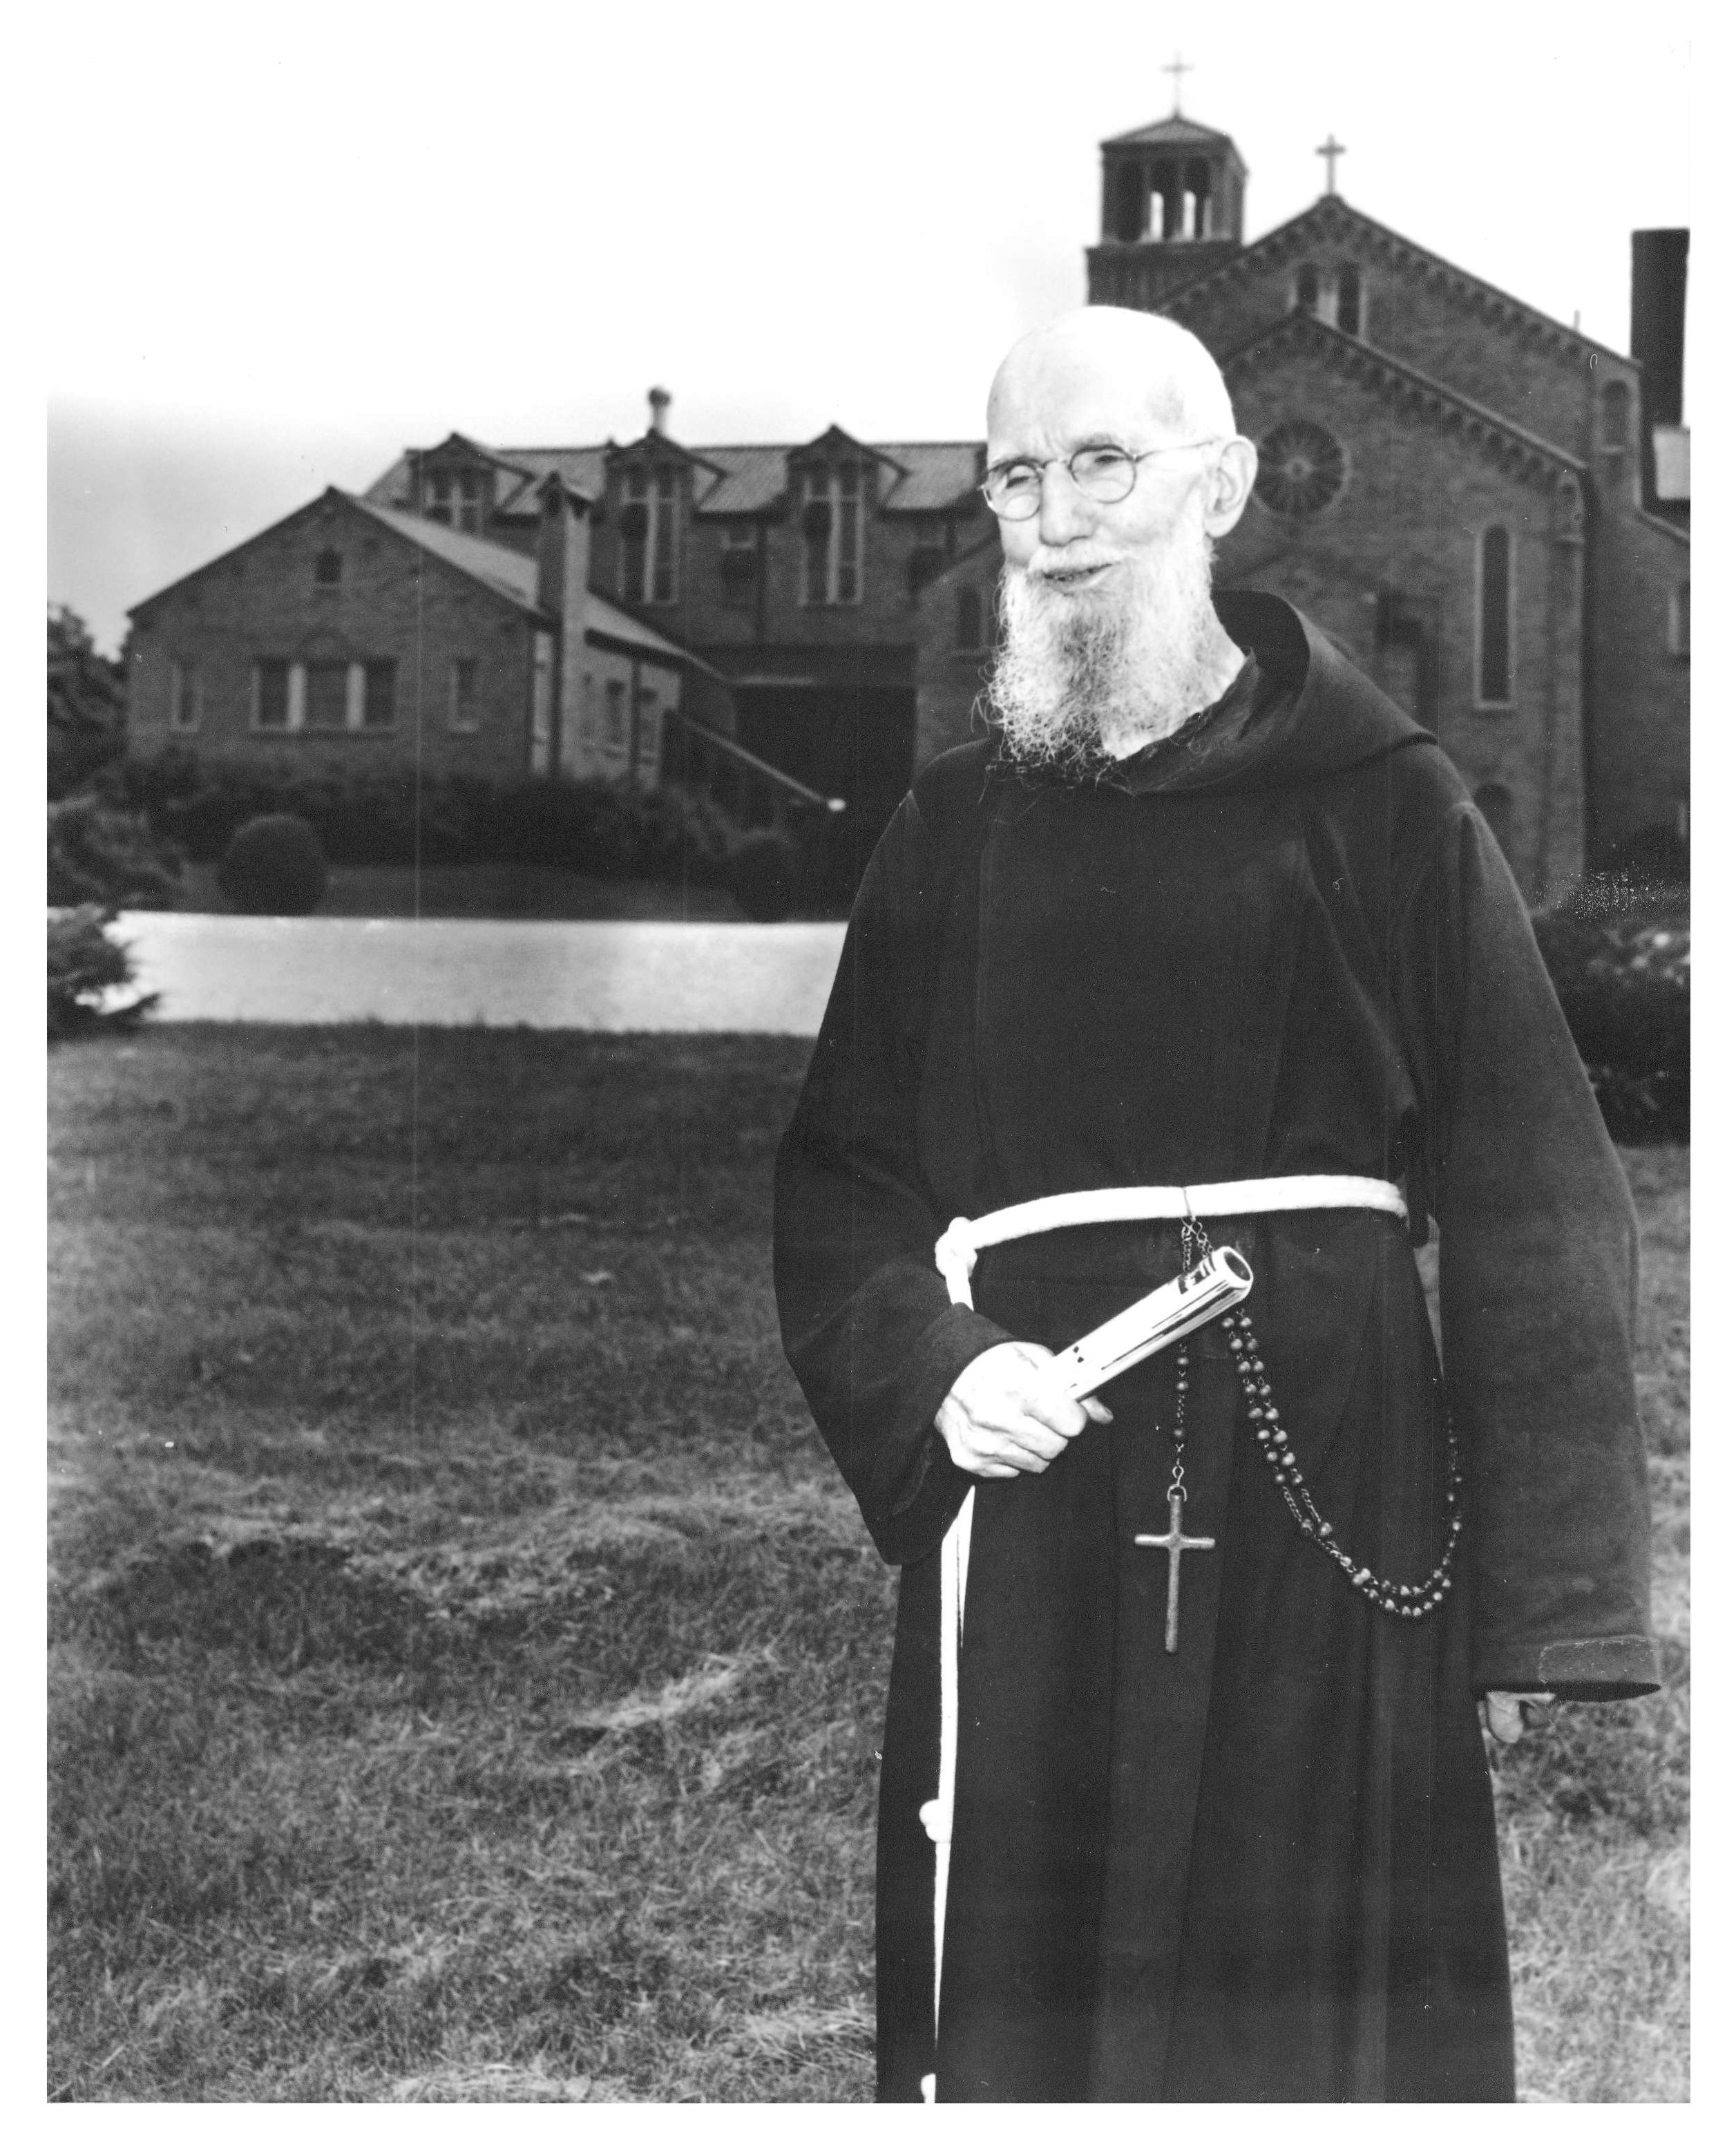 Catholic Diocese of Fort Wayne-South Bend remembers Blessed Solanus Casey